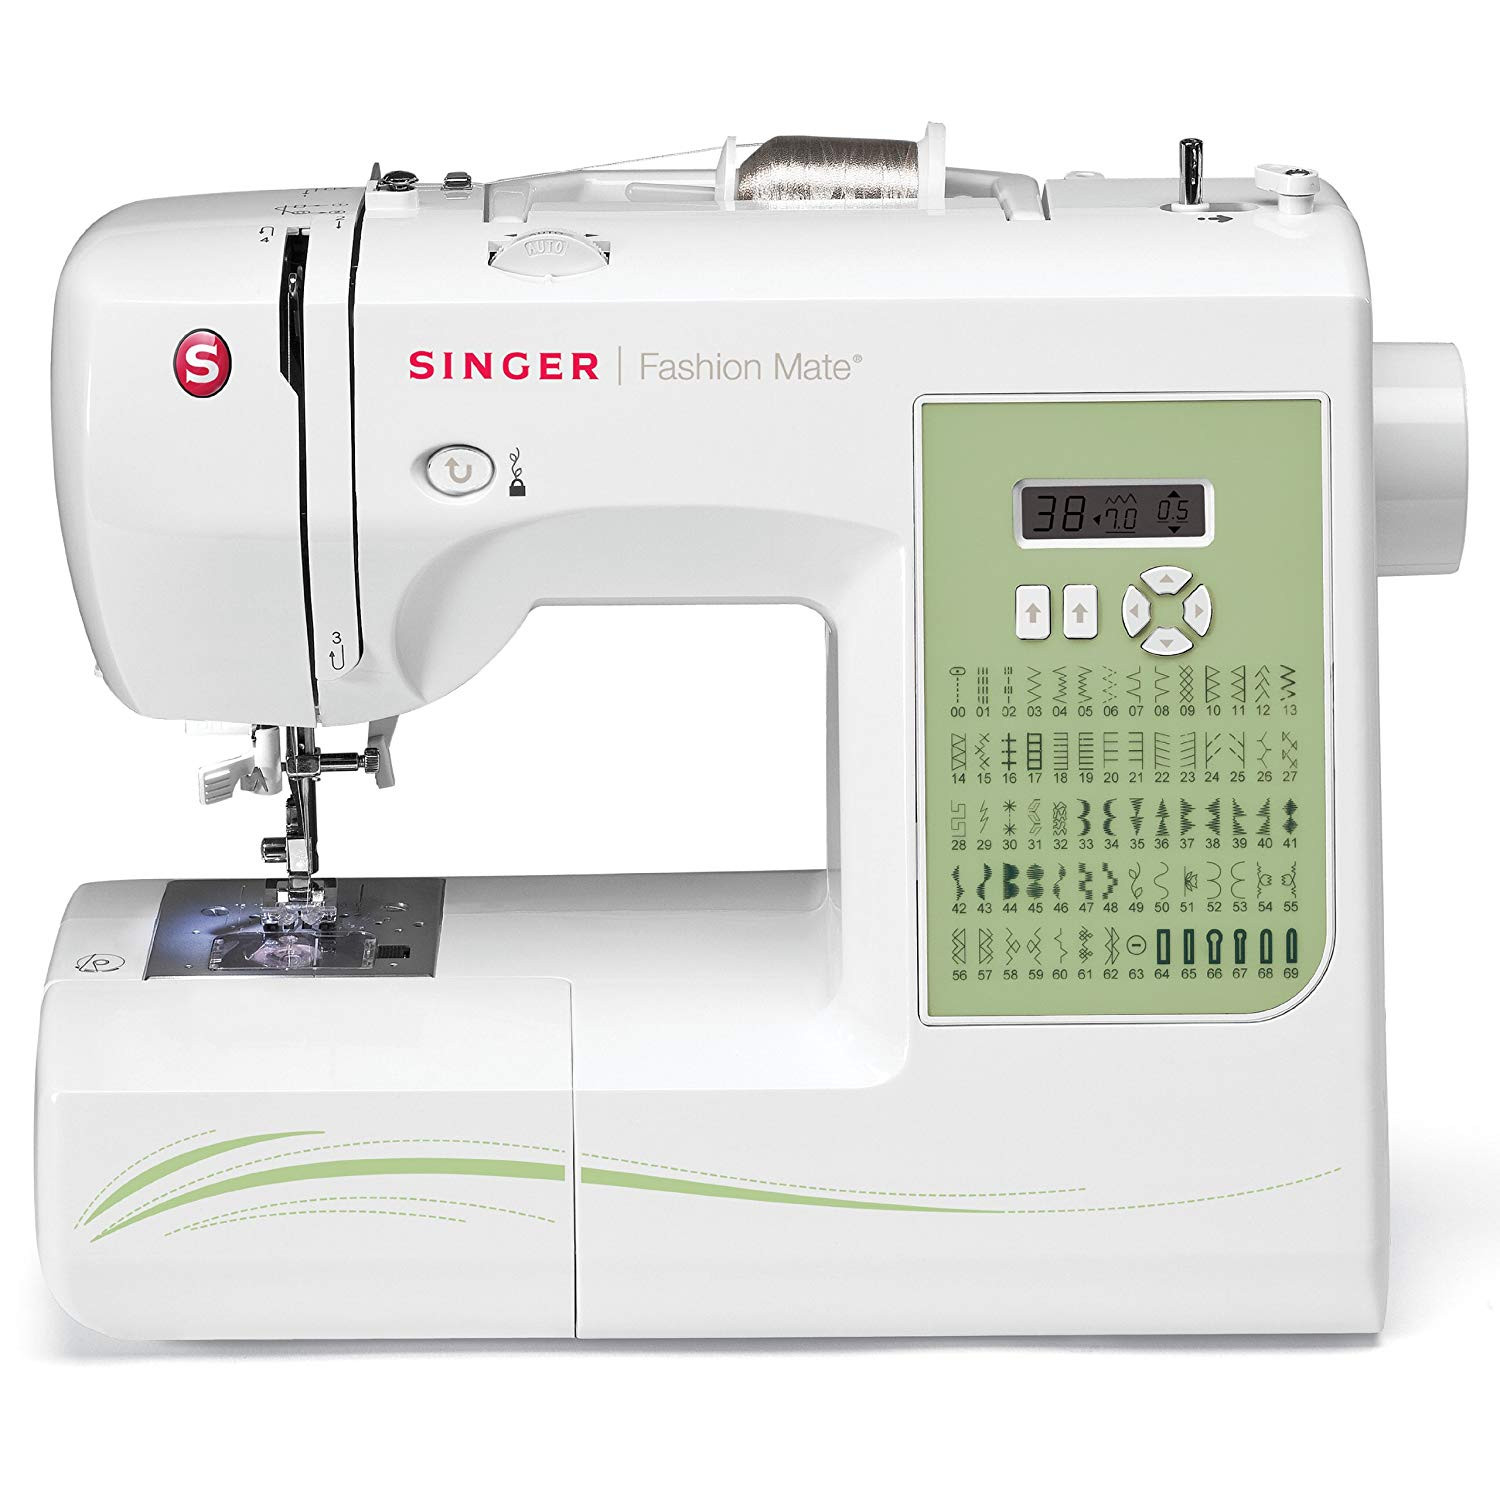 Sewing and Embroidery Machine Best Of Singer 7256 Fashion Mate 70 Stitch Puterized Free Arm Of Unique 48 Pics Sewing and Embroidery Machine